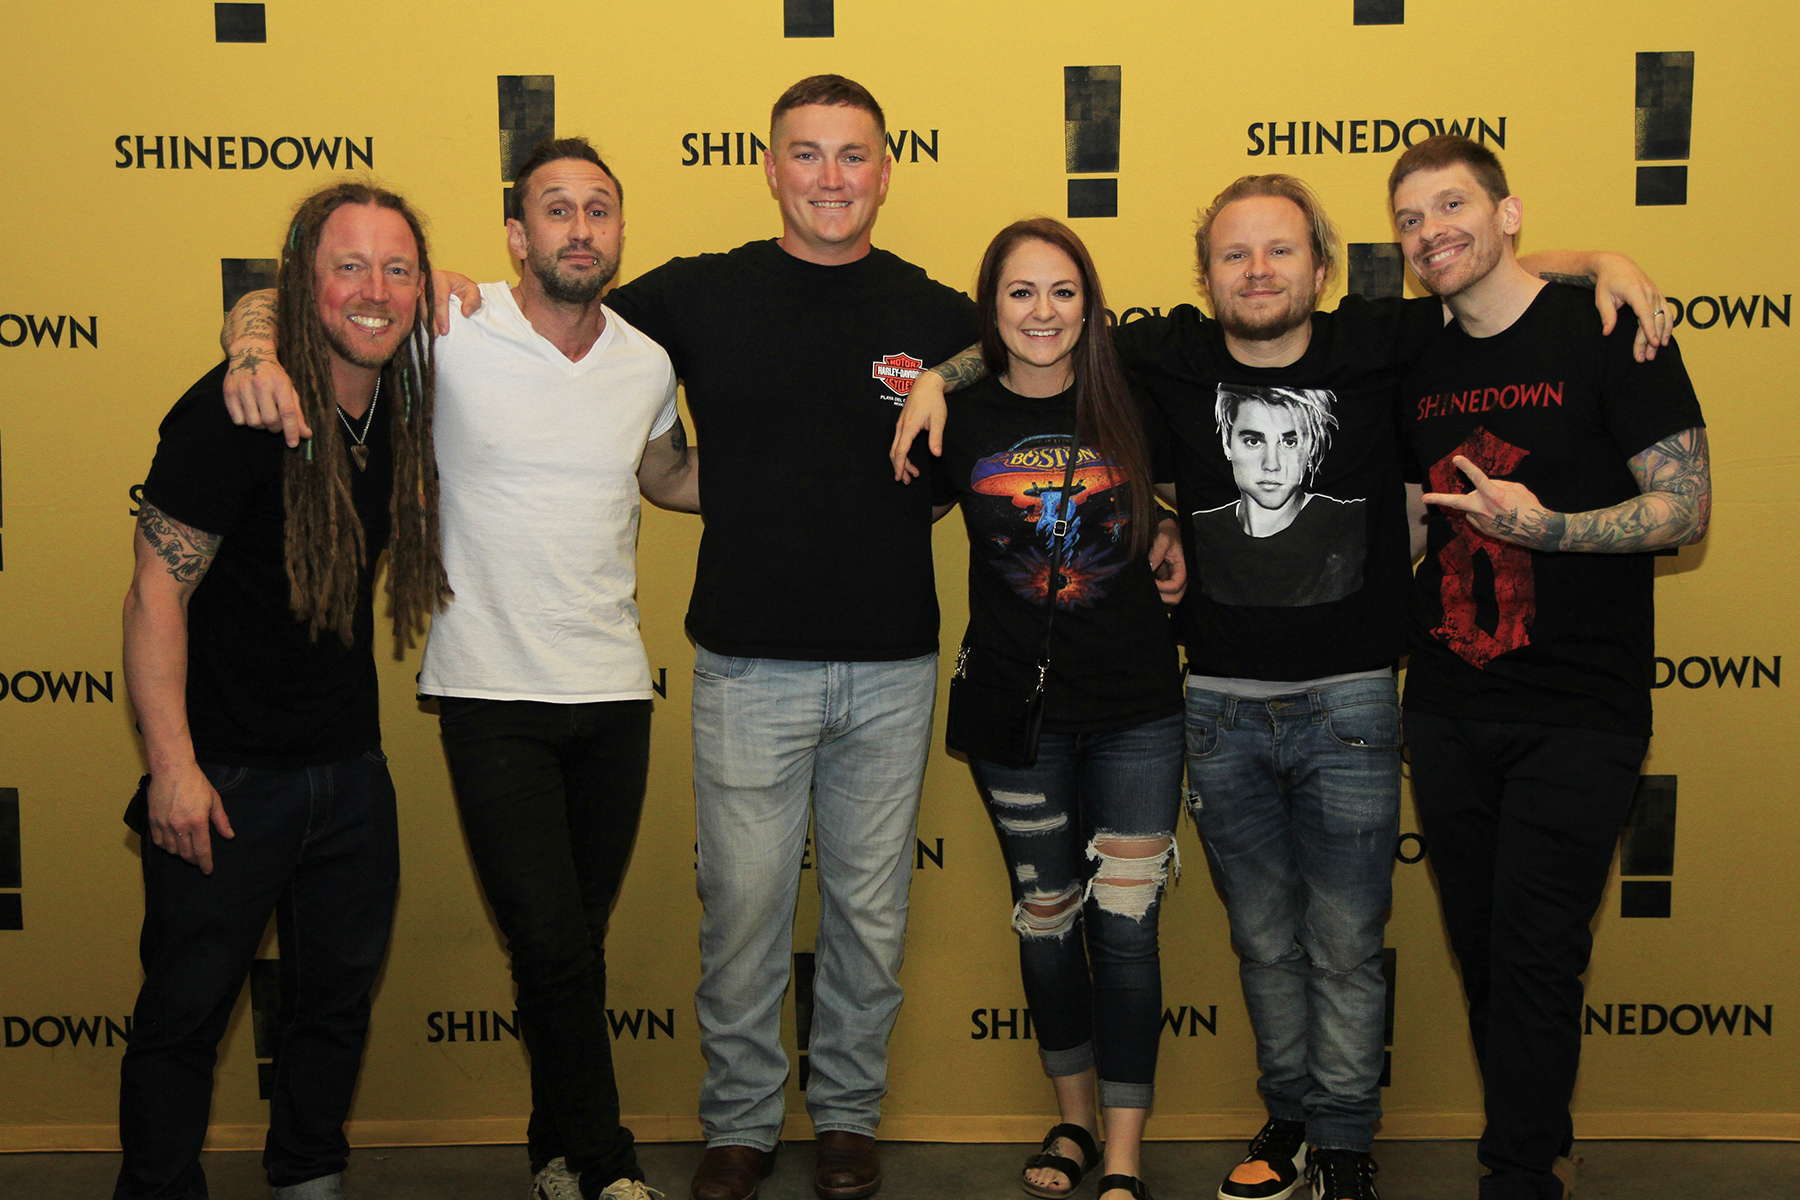 Shinedown meet and greet lazer 1033 shinedown meet and greet m4hsunfo